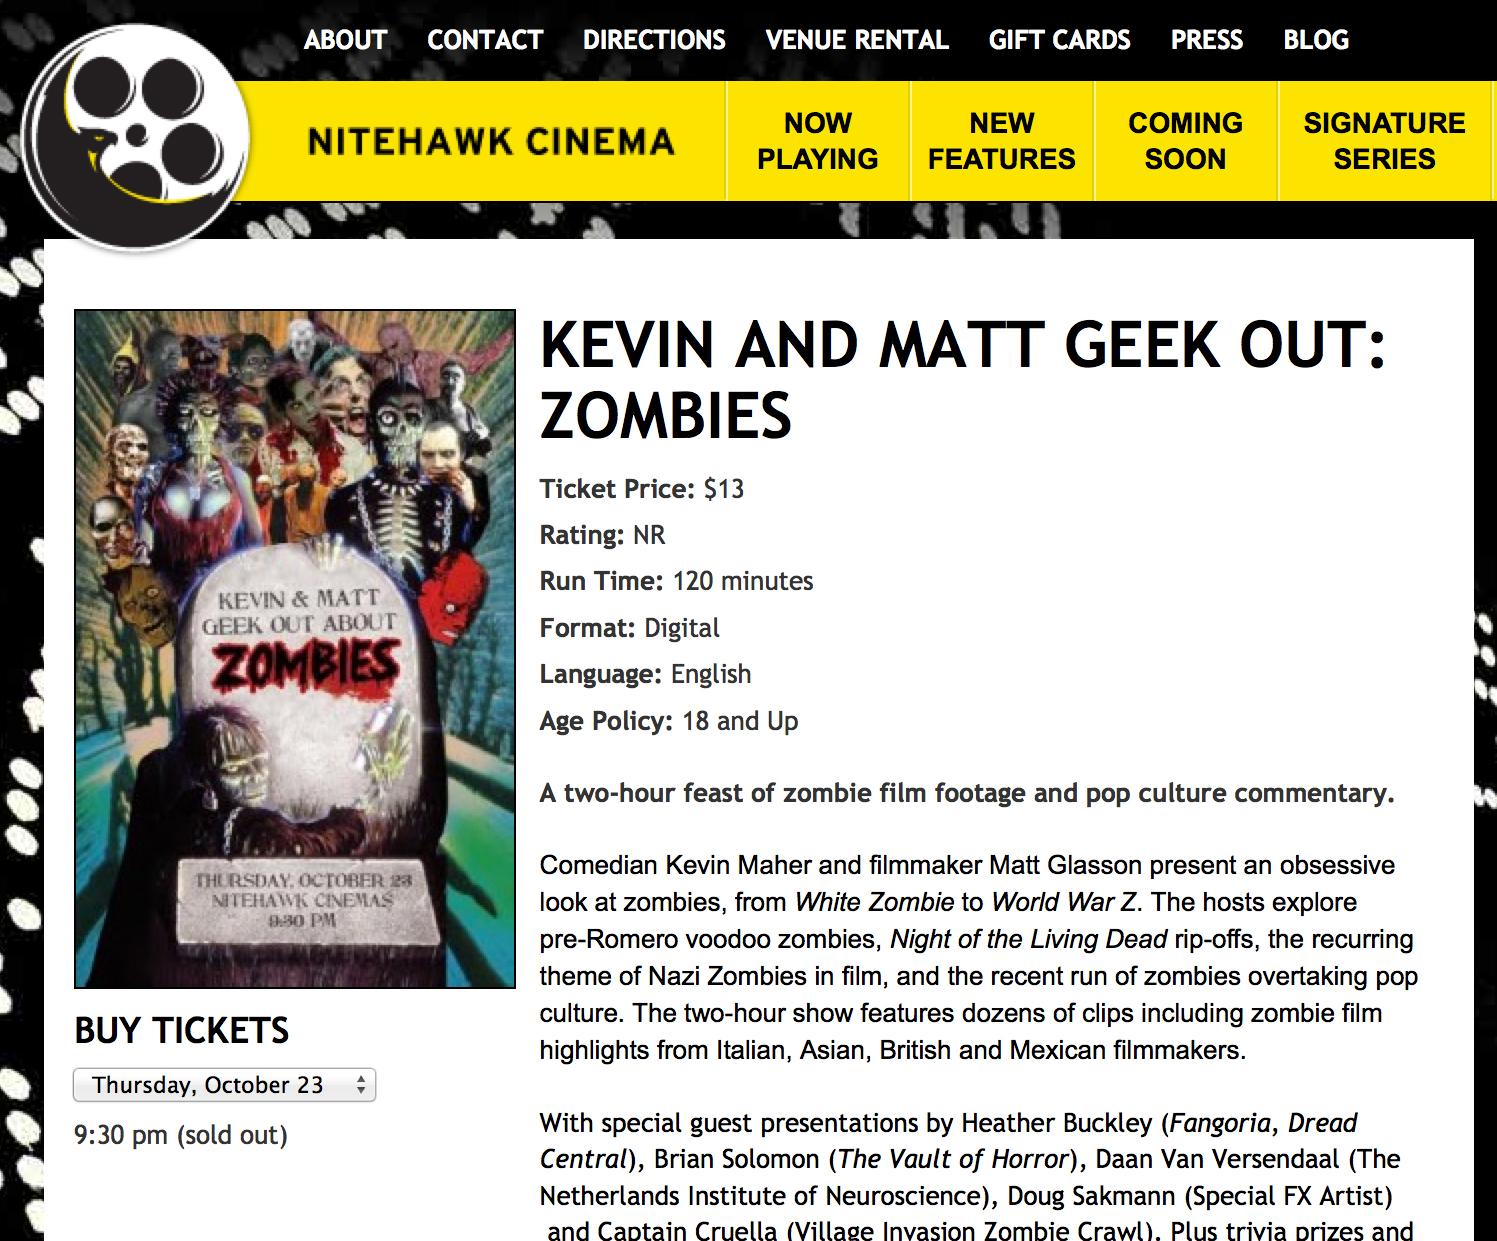 The Art of Eating Through the Zombie Apocalypse giveaway at Nitehawk Cinema.